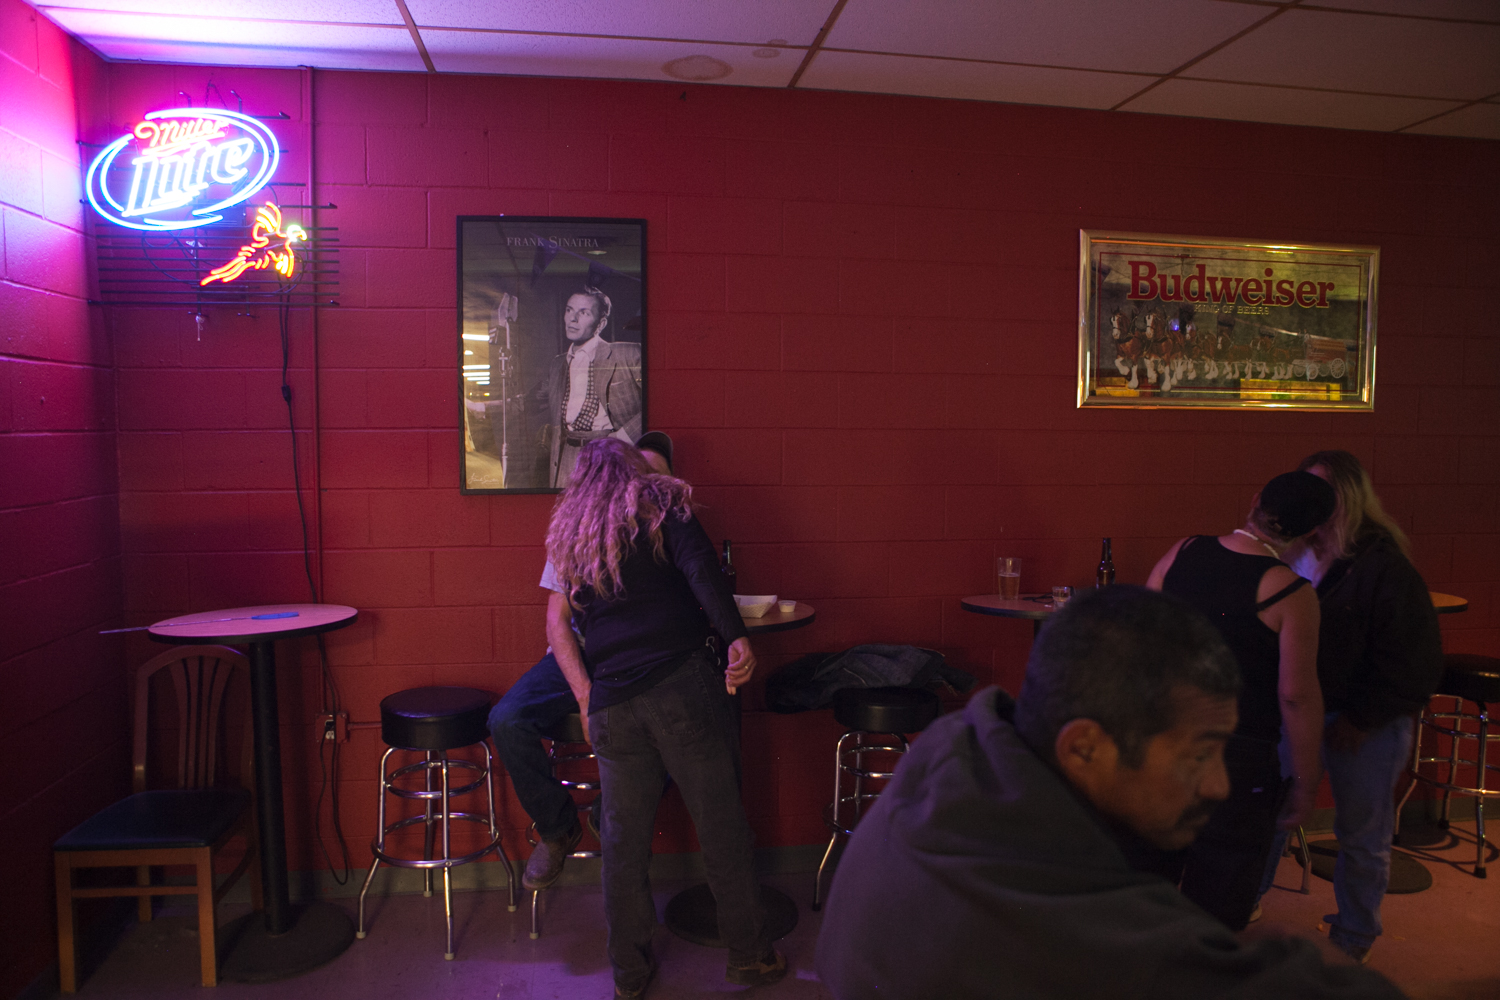 Five carnival workers (one man in the foreground, two couples in the background) spend some free time in a local bar. As the man sits at the bar, the two couples each engage in a kiss.